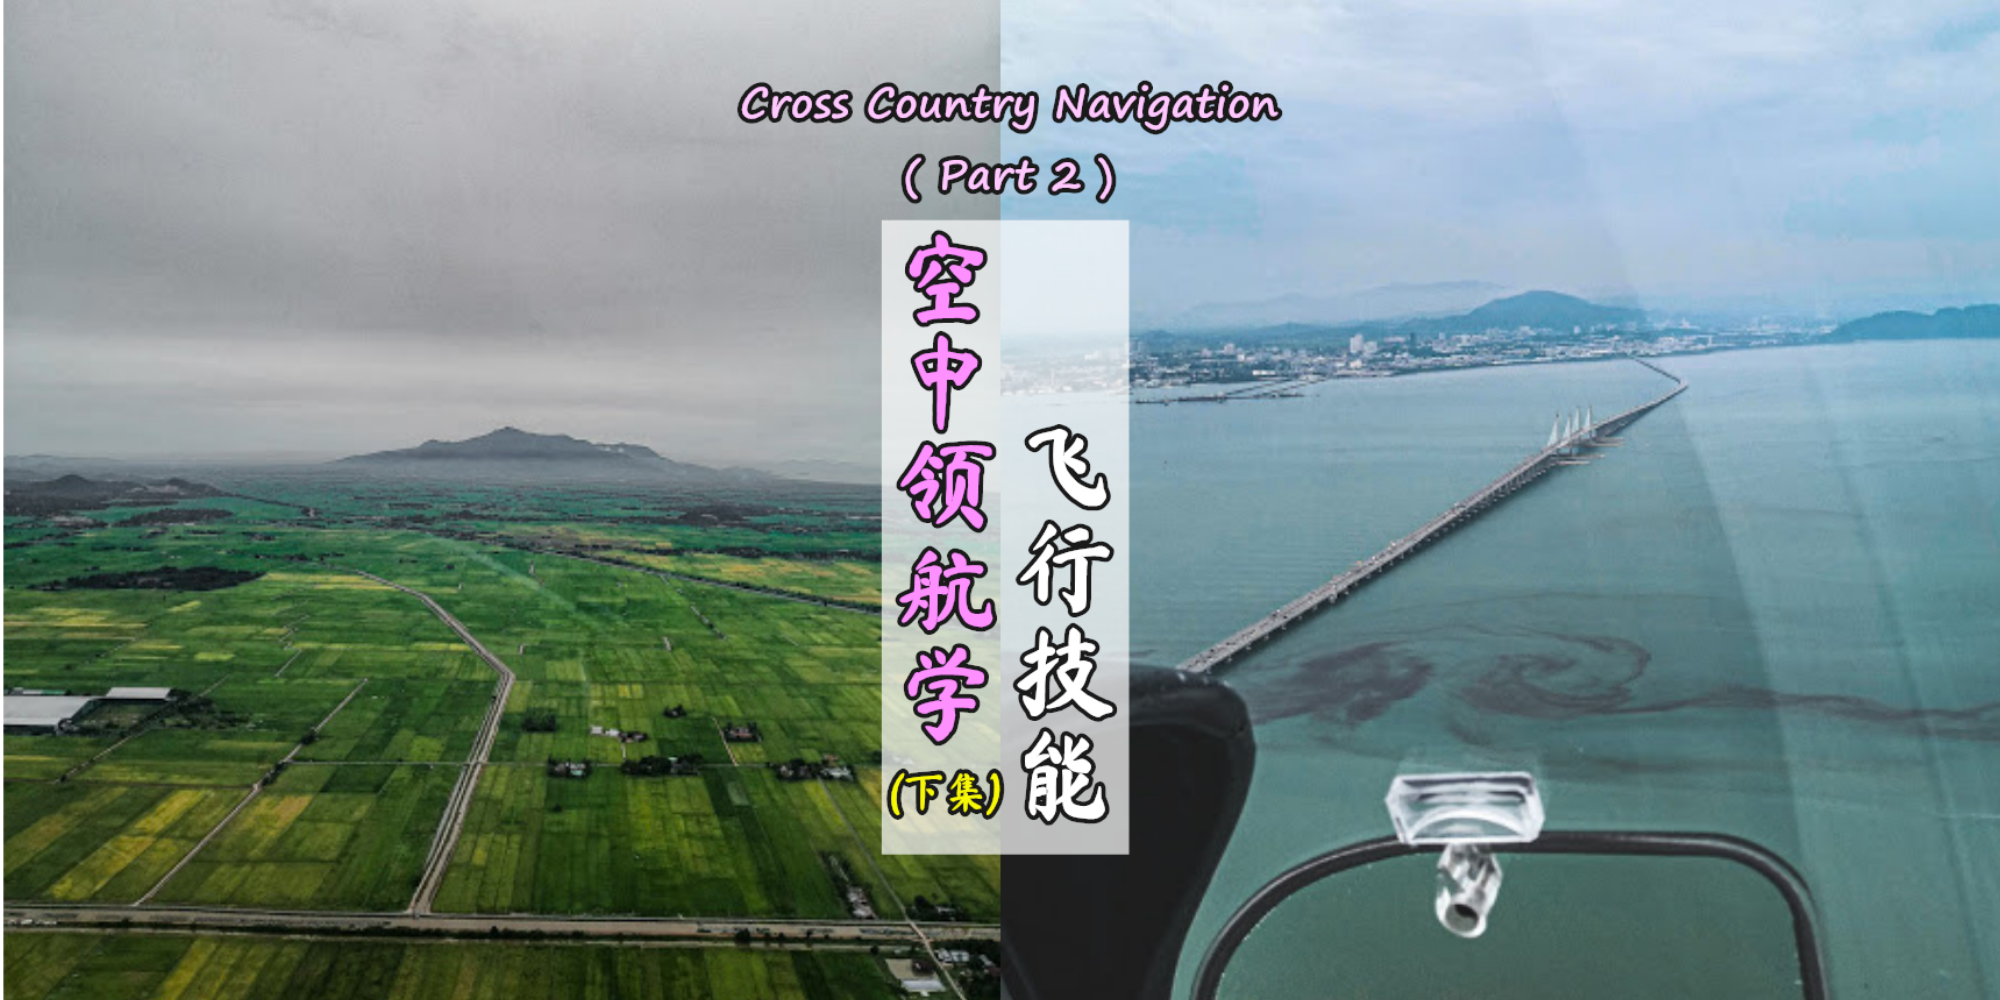 You are currently viewing 大马飞行学员开启空中领航学(Cross Country Navigation Exercises) 飞行篇!Part 2